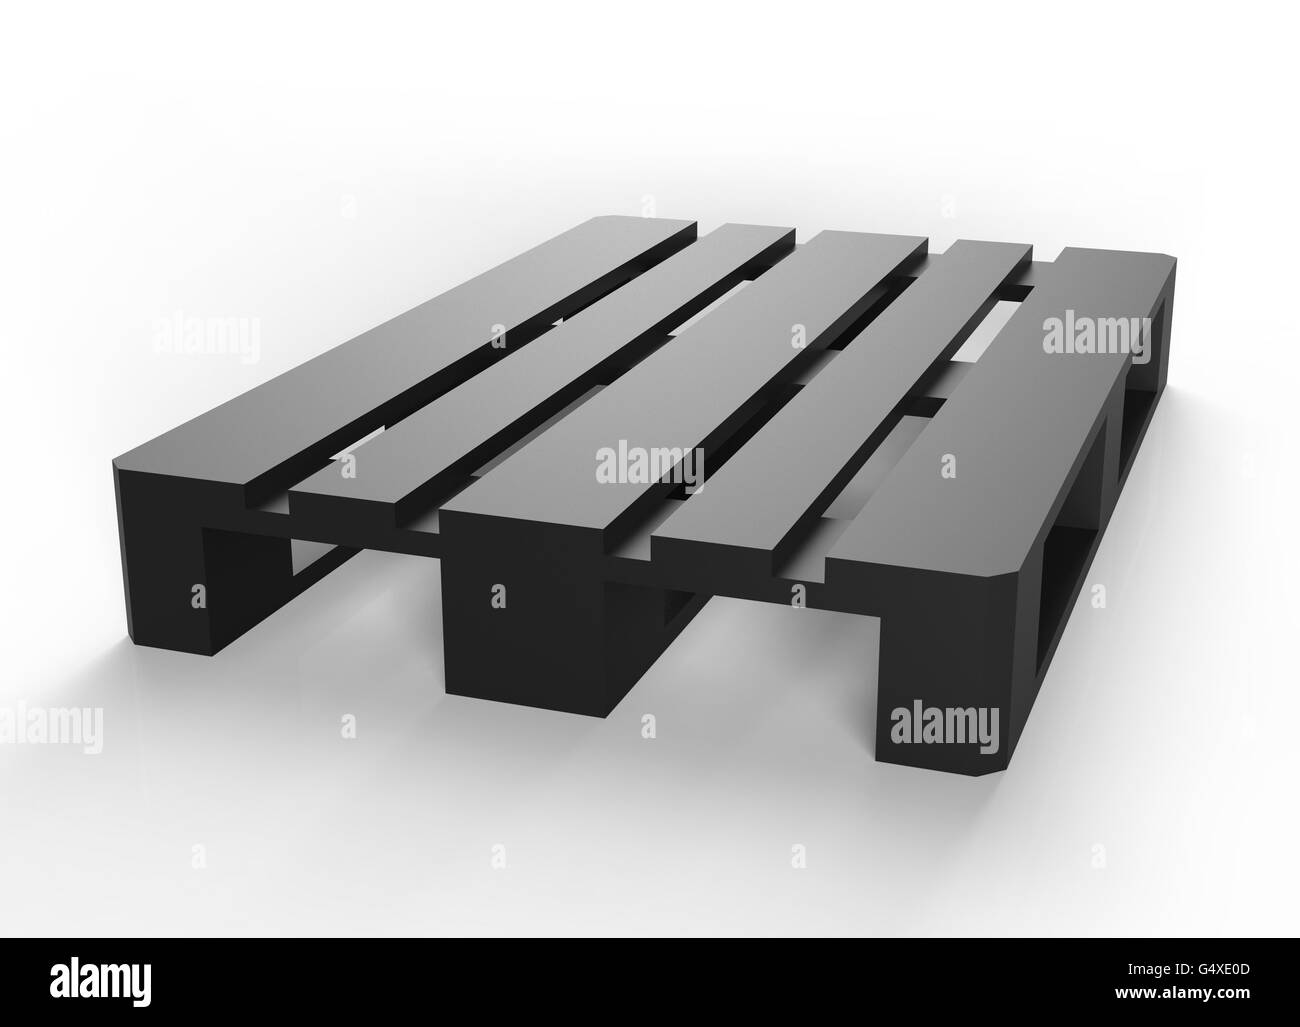 pallet isolated on a white back ground - Stock Image